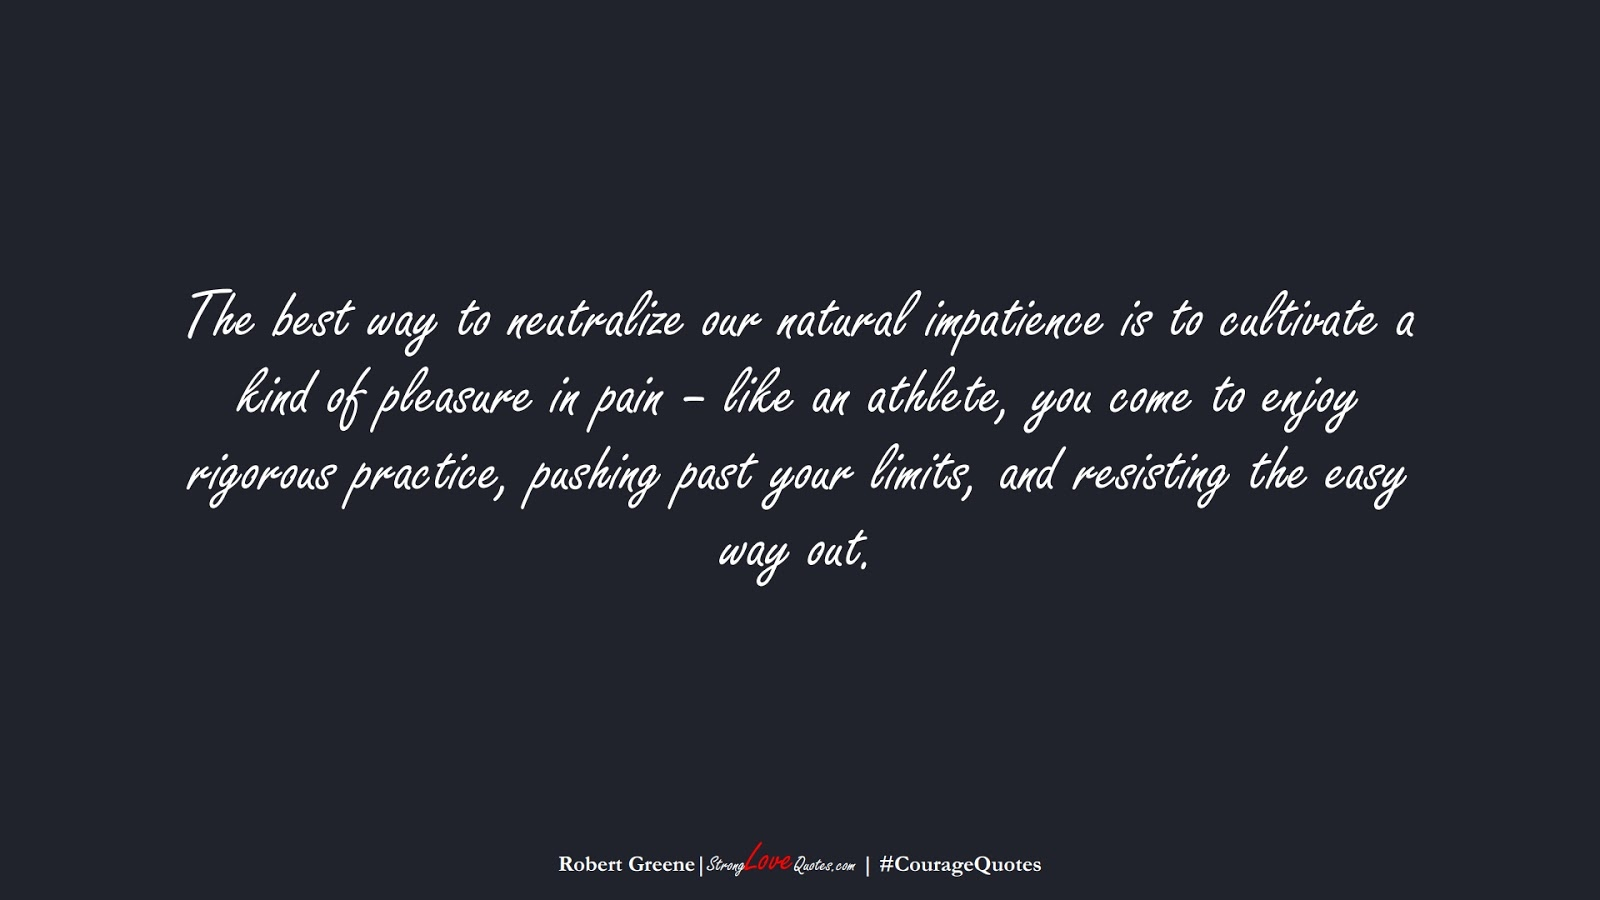 The best way to neutralize our natural impatience is to cultivate a kind of pleasure in pain – like an athlete, you come to enjoy rigorous practice, pushing past your limits, and resisting the easy way out. (Robert Greene);  #CourageQuotes